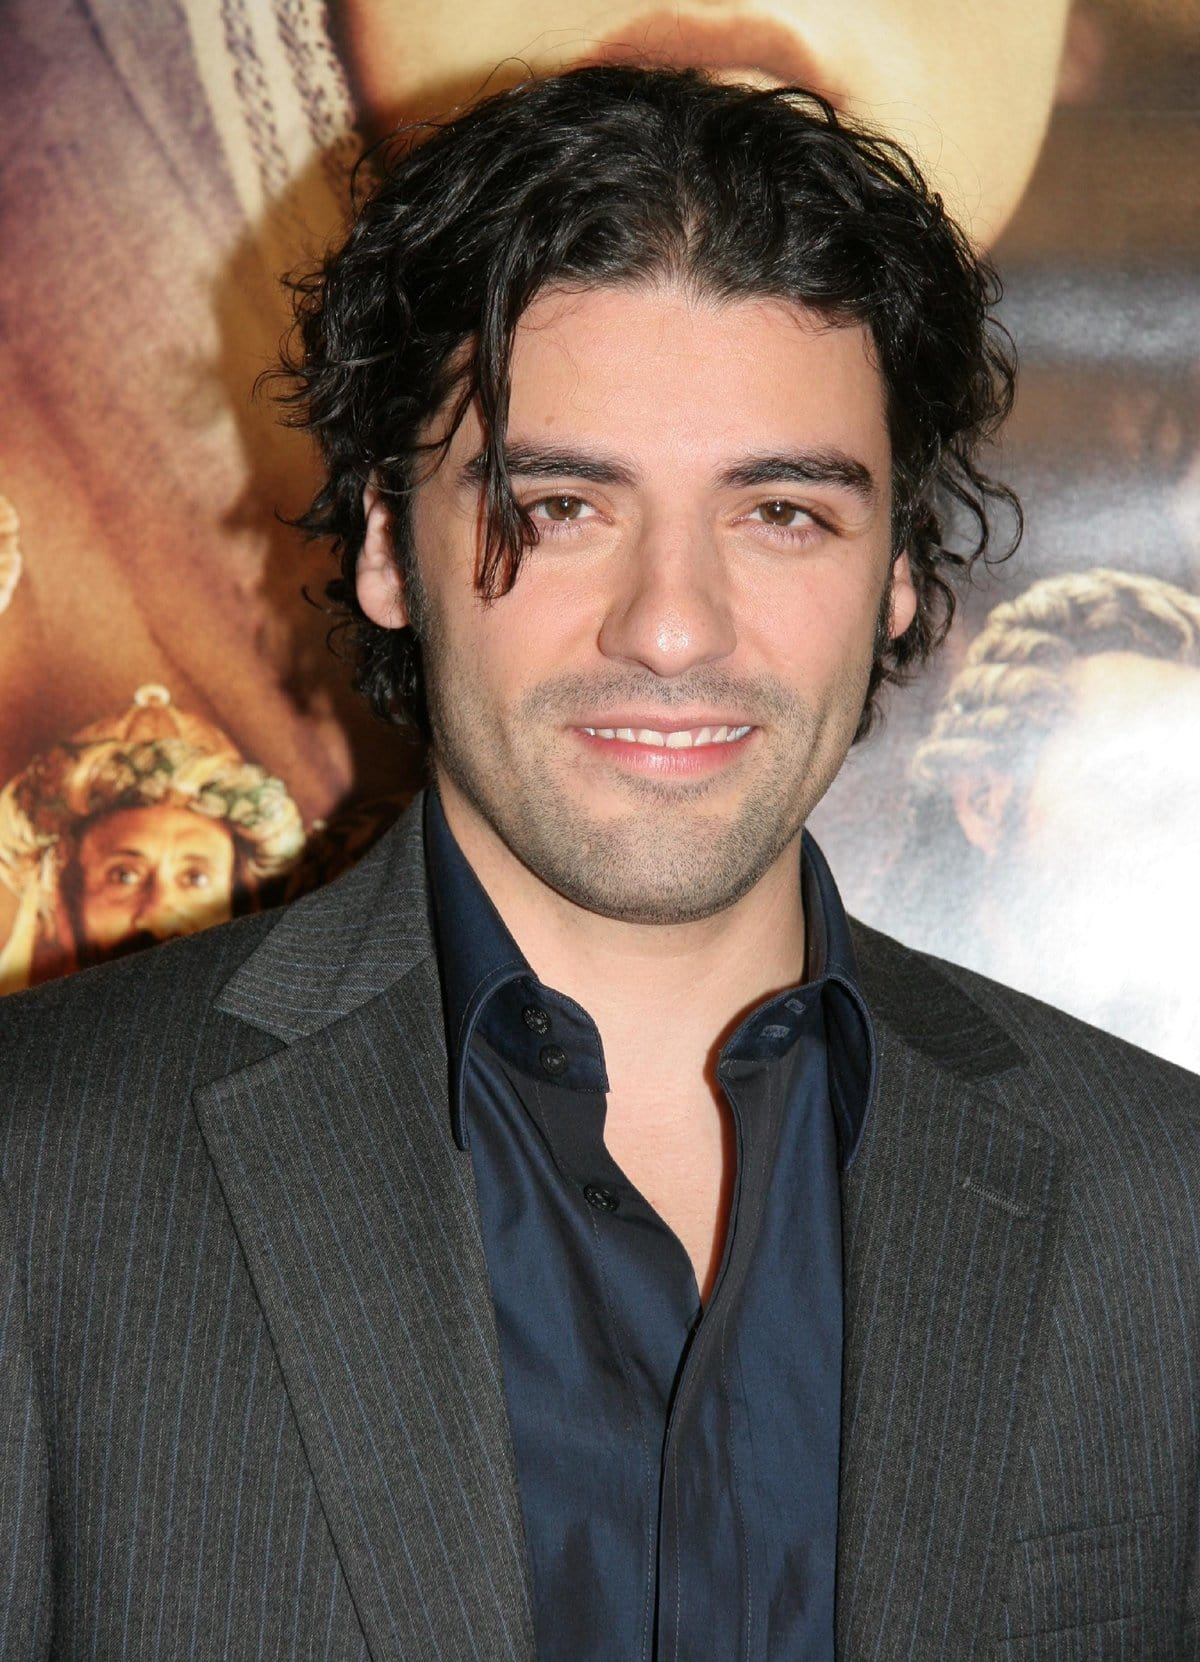 Oscar Isaac at the premiere of the 2006 American biblical drama film The Nativity Story